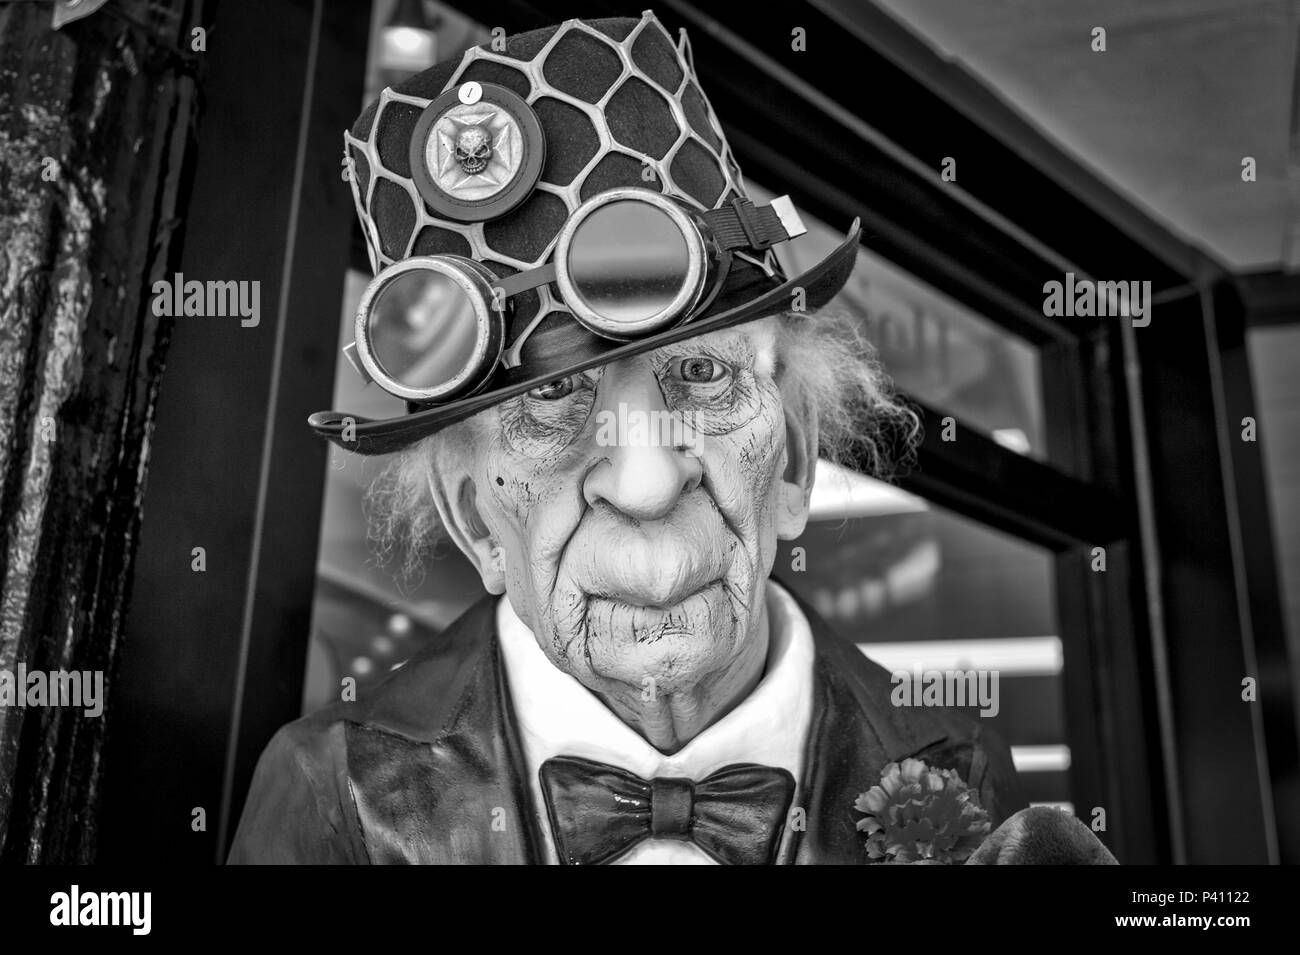 portrait of an old man mannequin dressed in steampunk fashion outside a store in Tarpon Springs, Florida USA - Stock Image